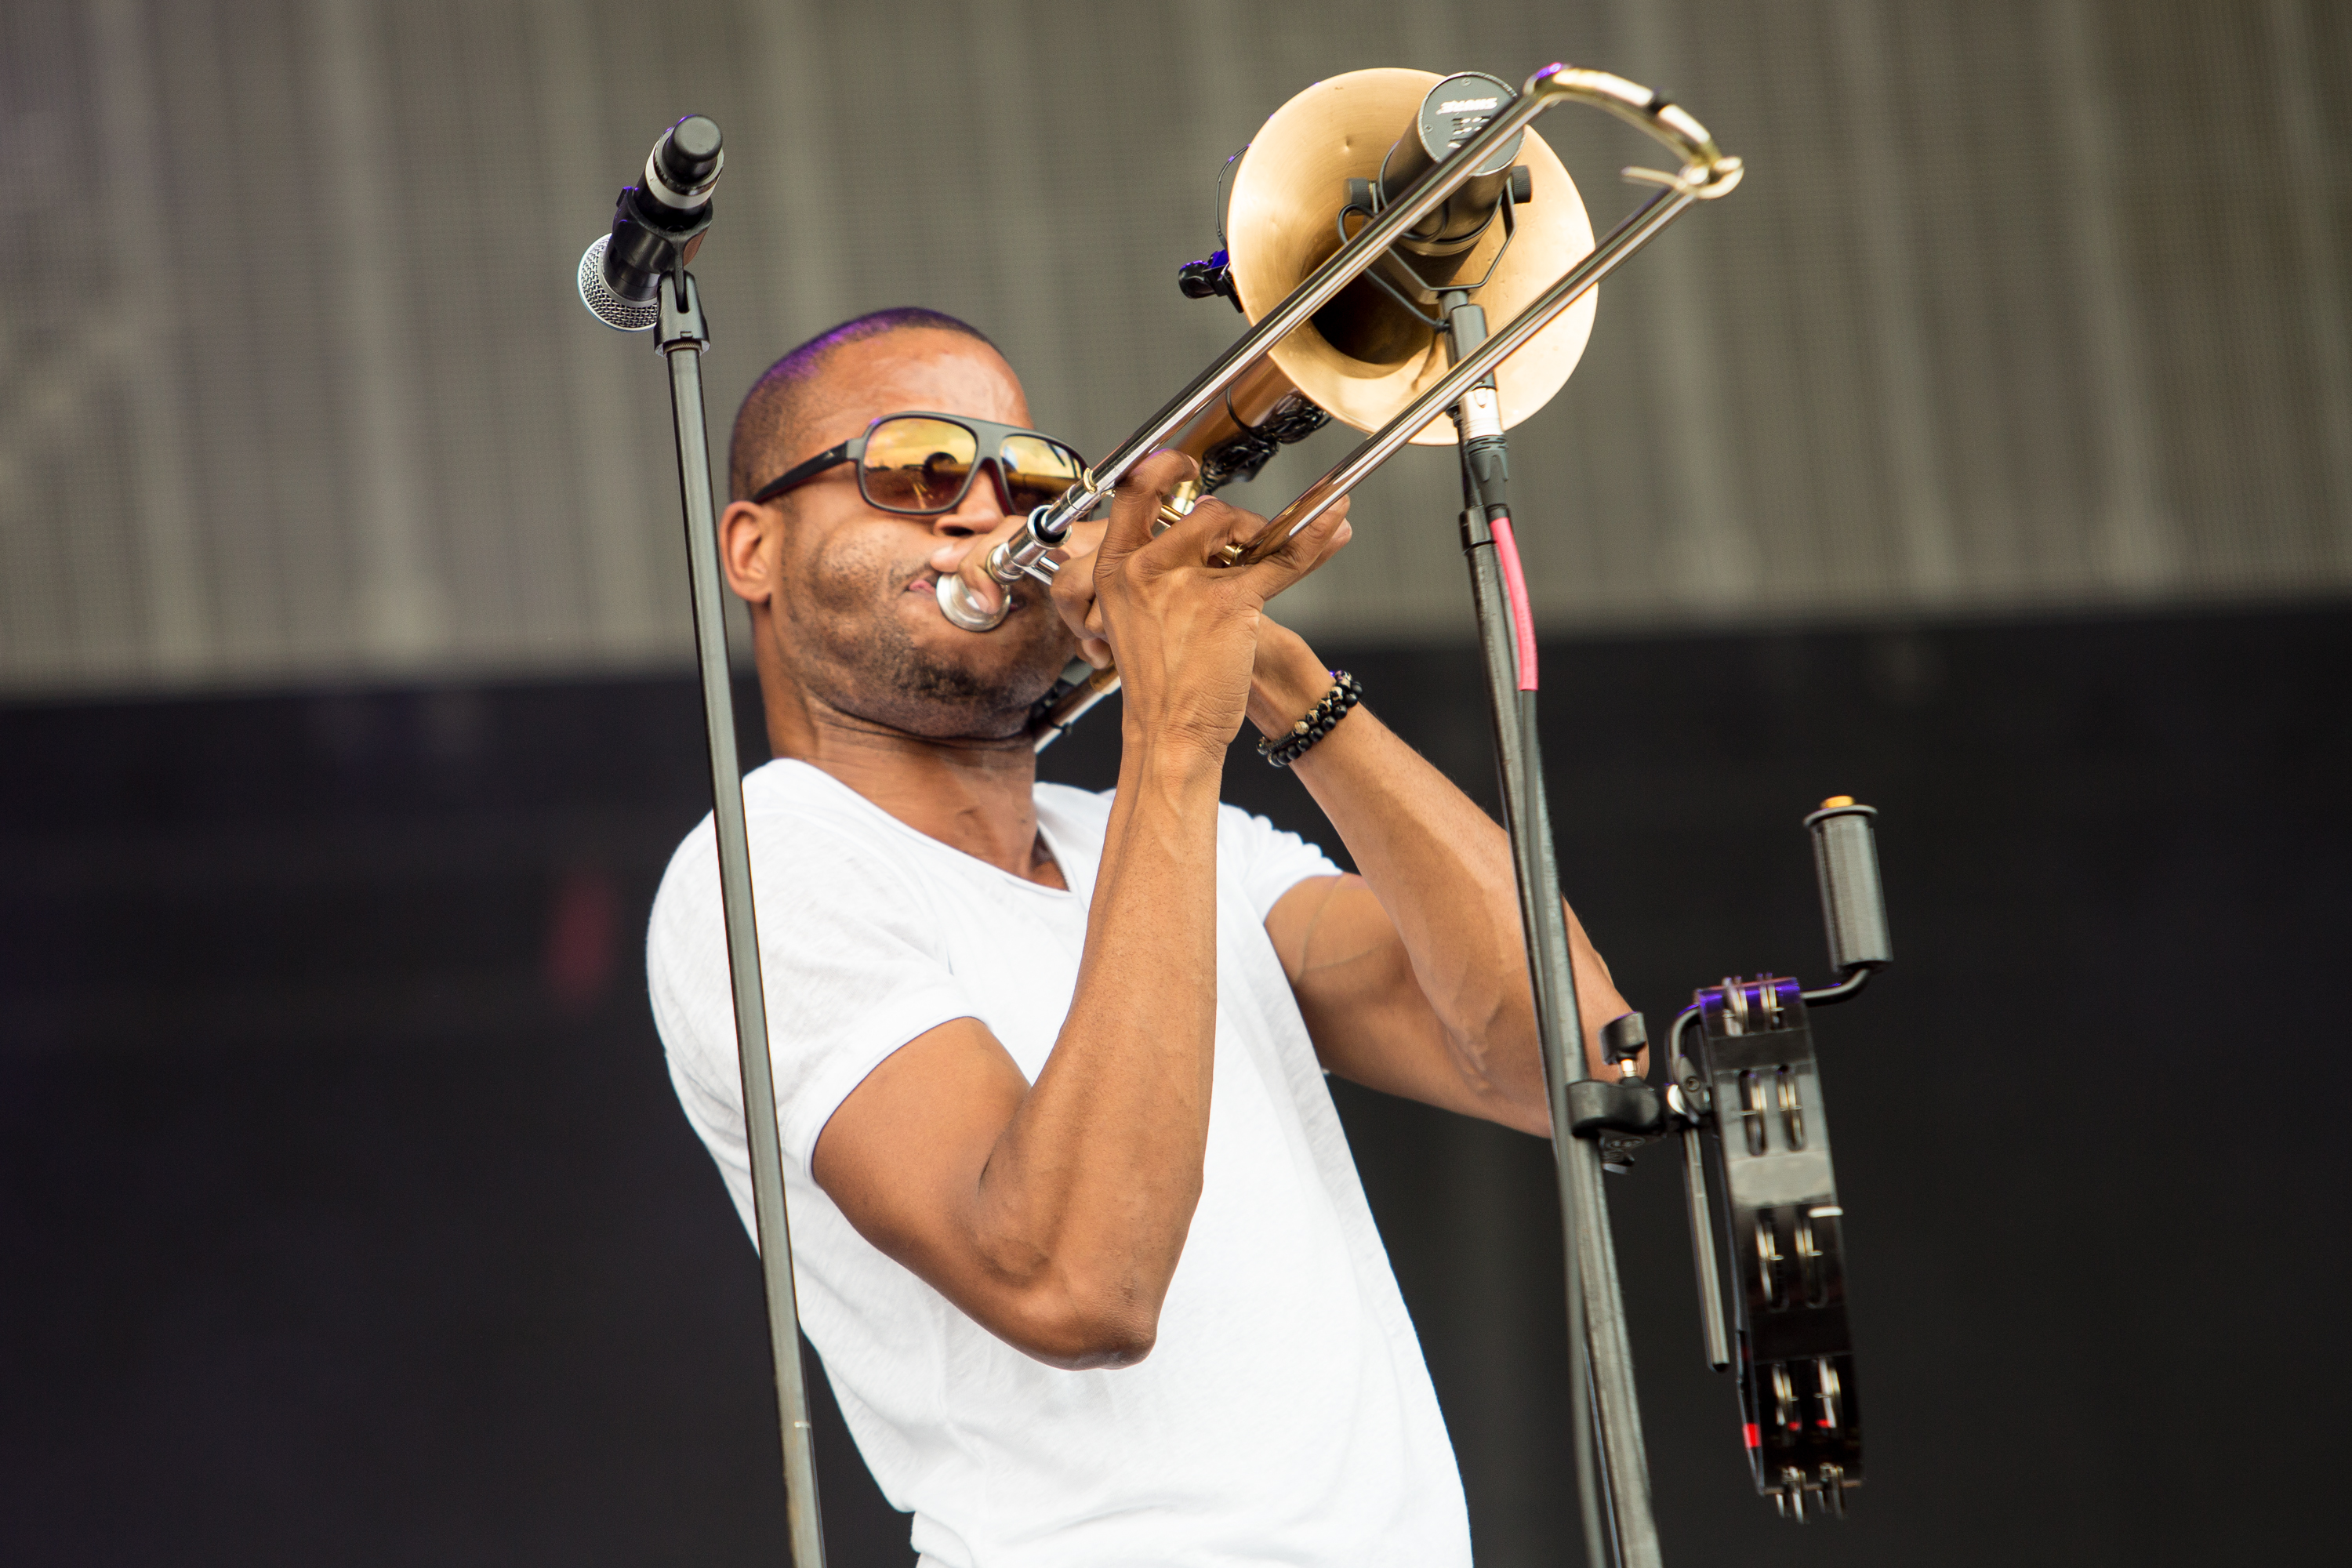 Trombone Shorty to Tour with Hall & Oates Music Girl Cover Photos For Facebook